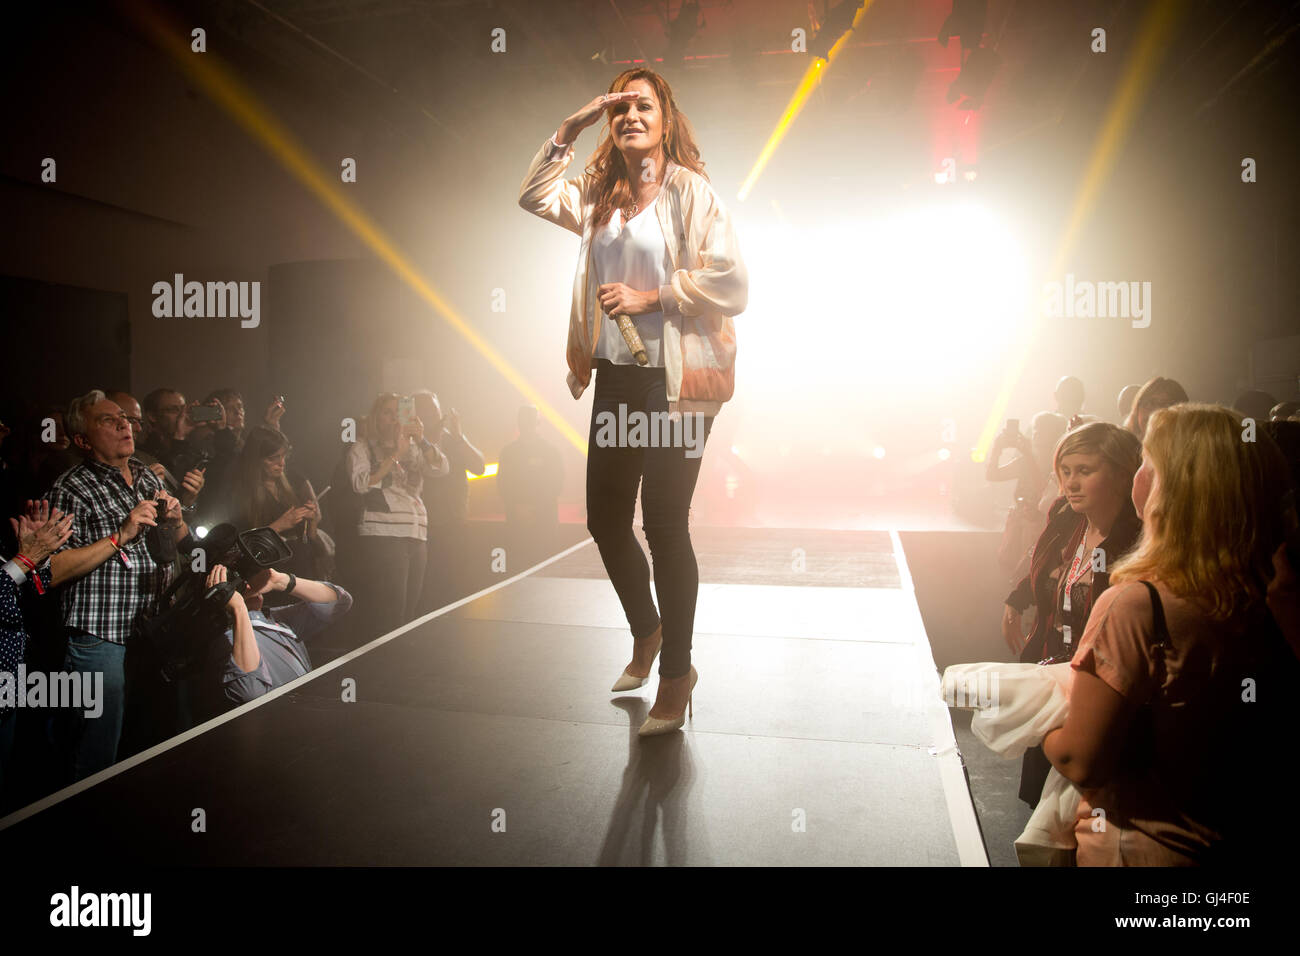 Andrea berg 2016 hd image free - 11th Aug 2016 Schlager Singer Andrea Berg Performing During A